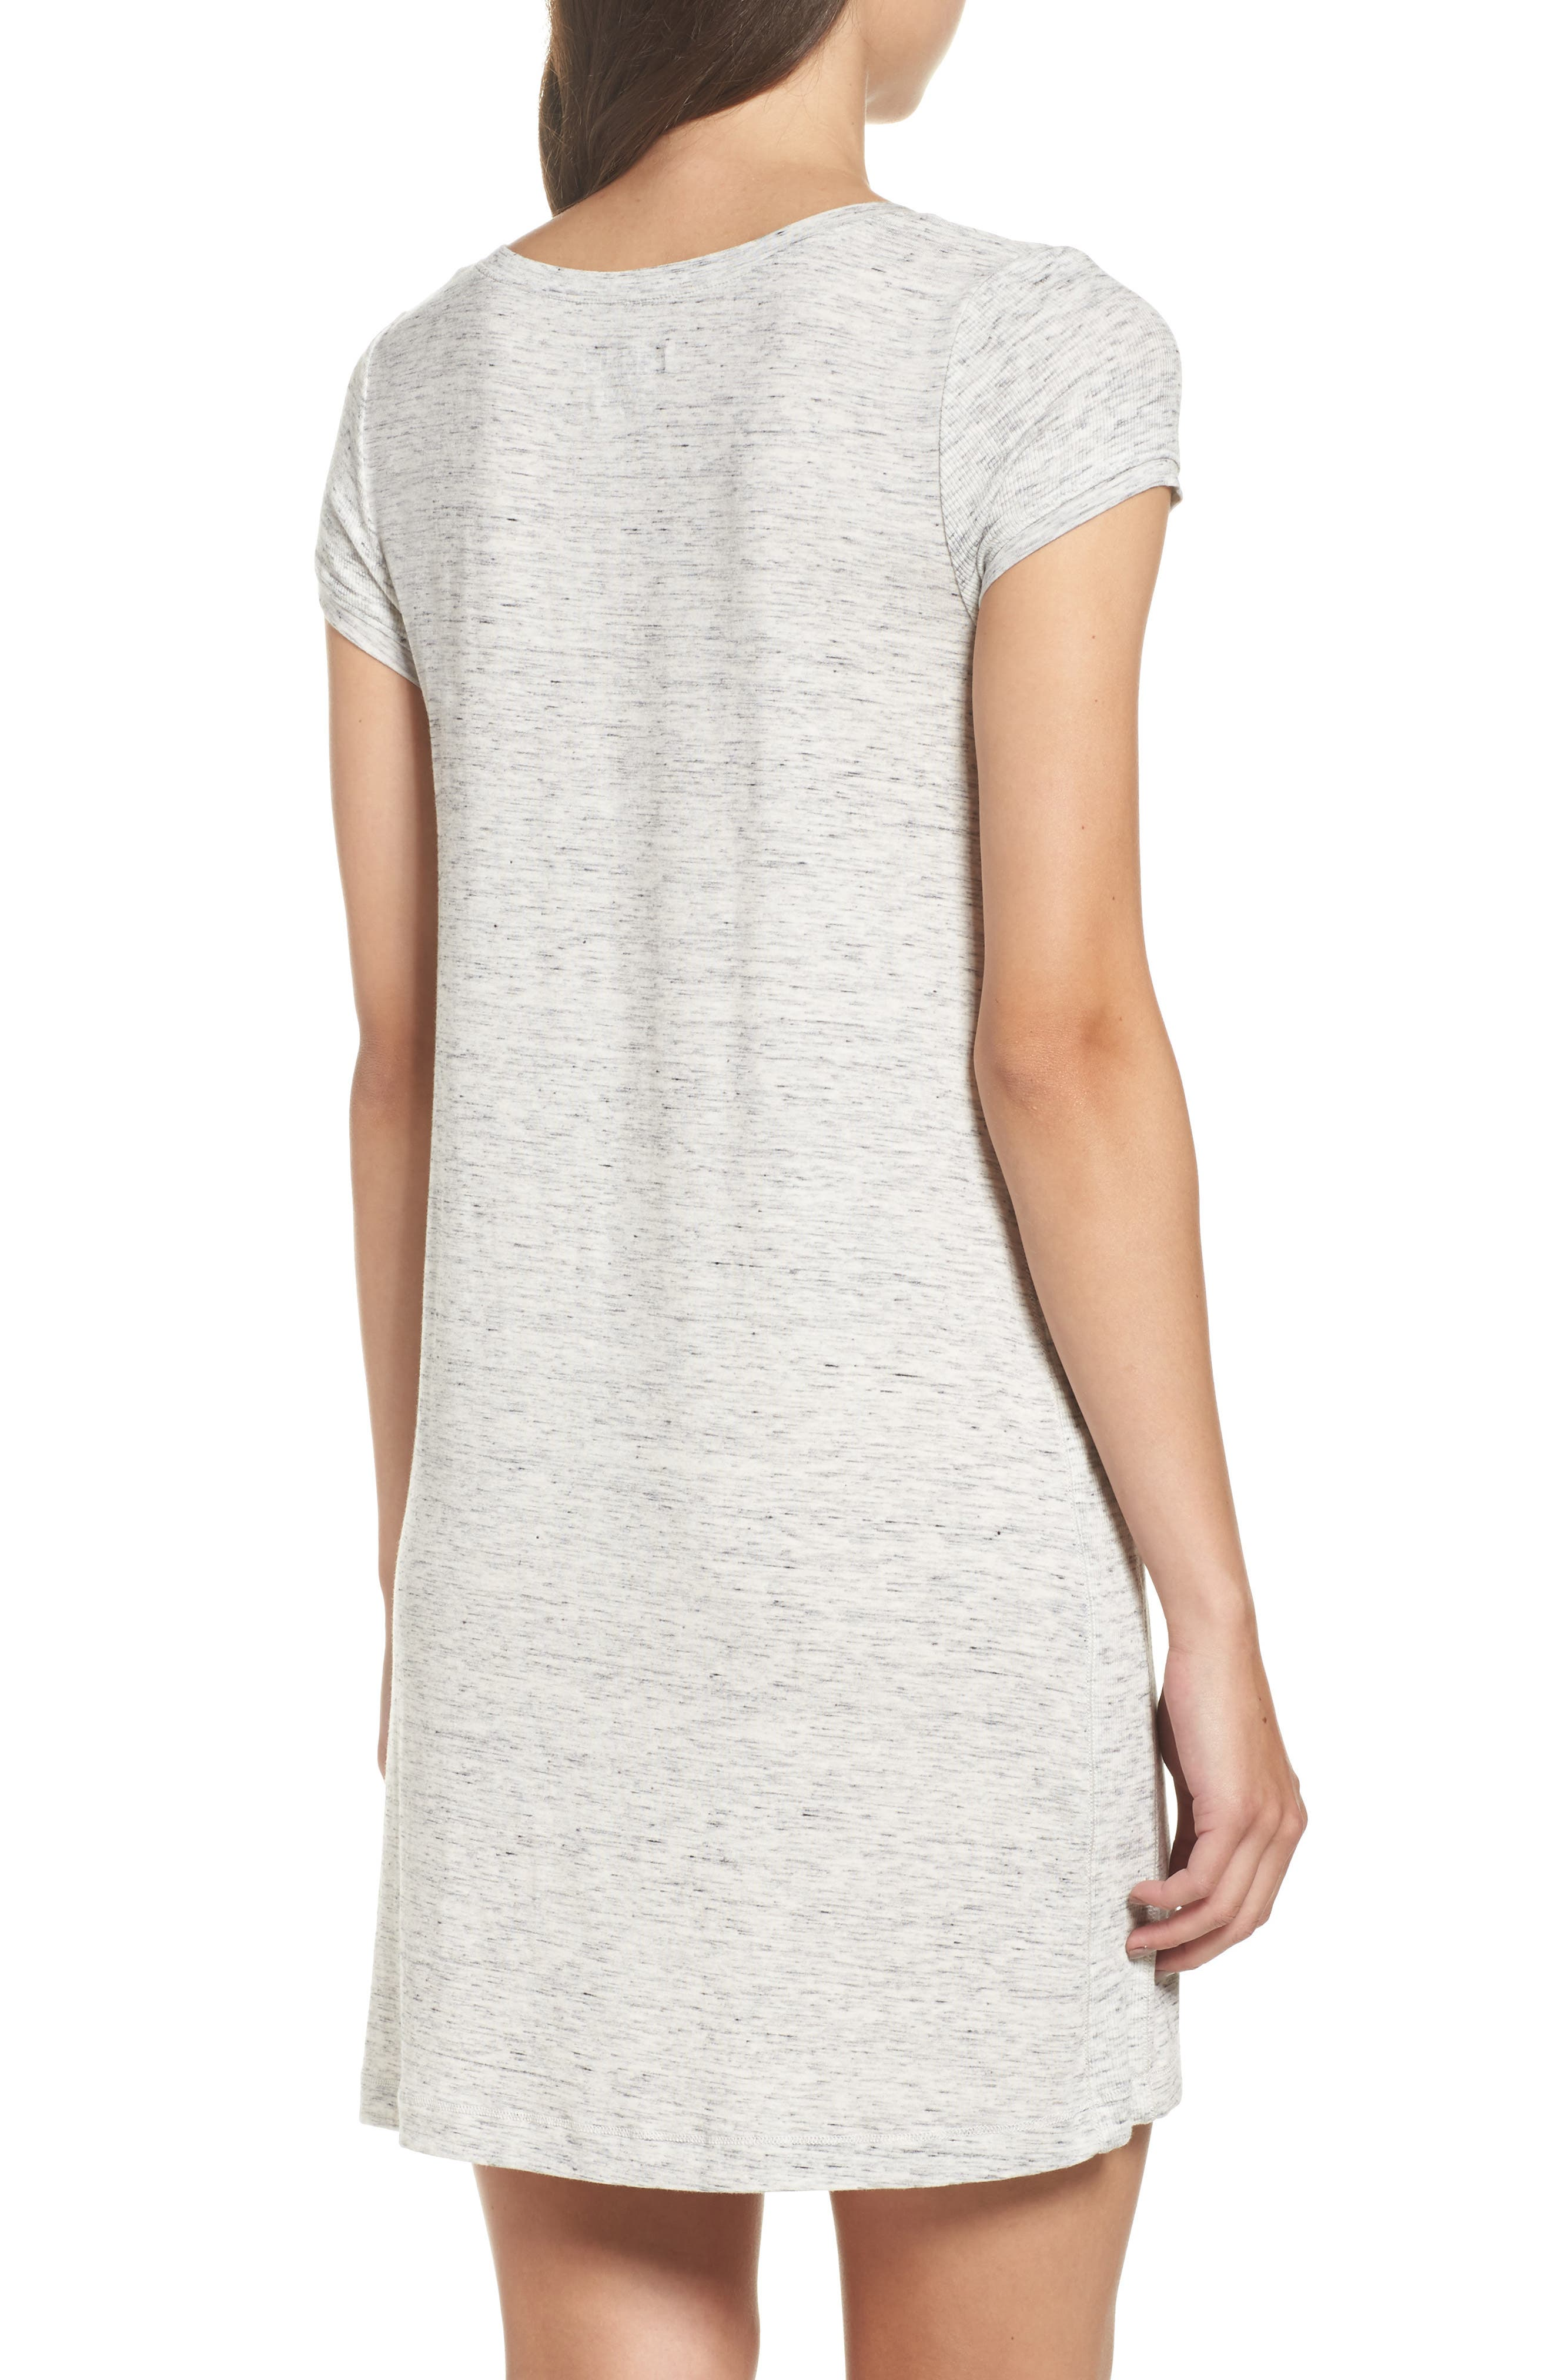 'City Essentials' V-Neck Sleep Shirt,                             Alternate thumbnail 2, color,                             Light Gray Heather